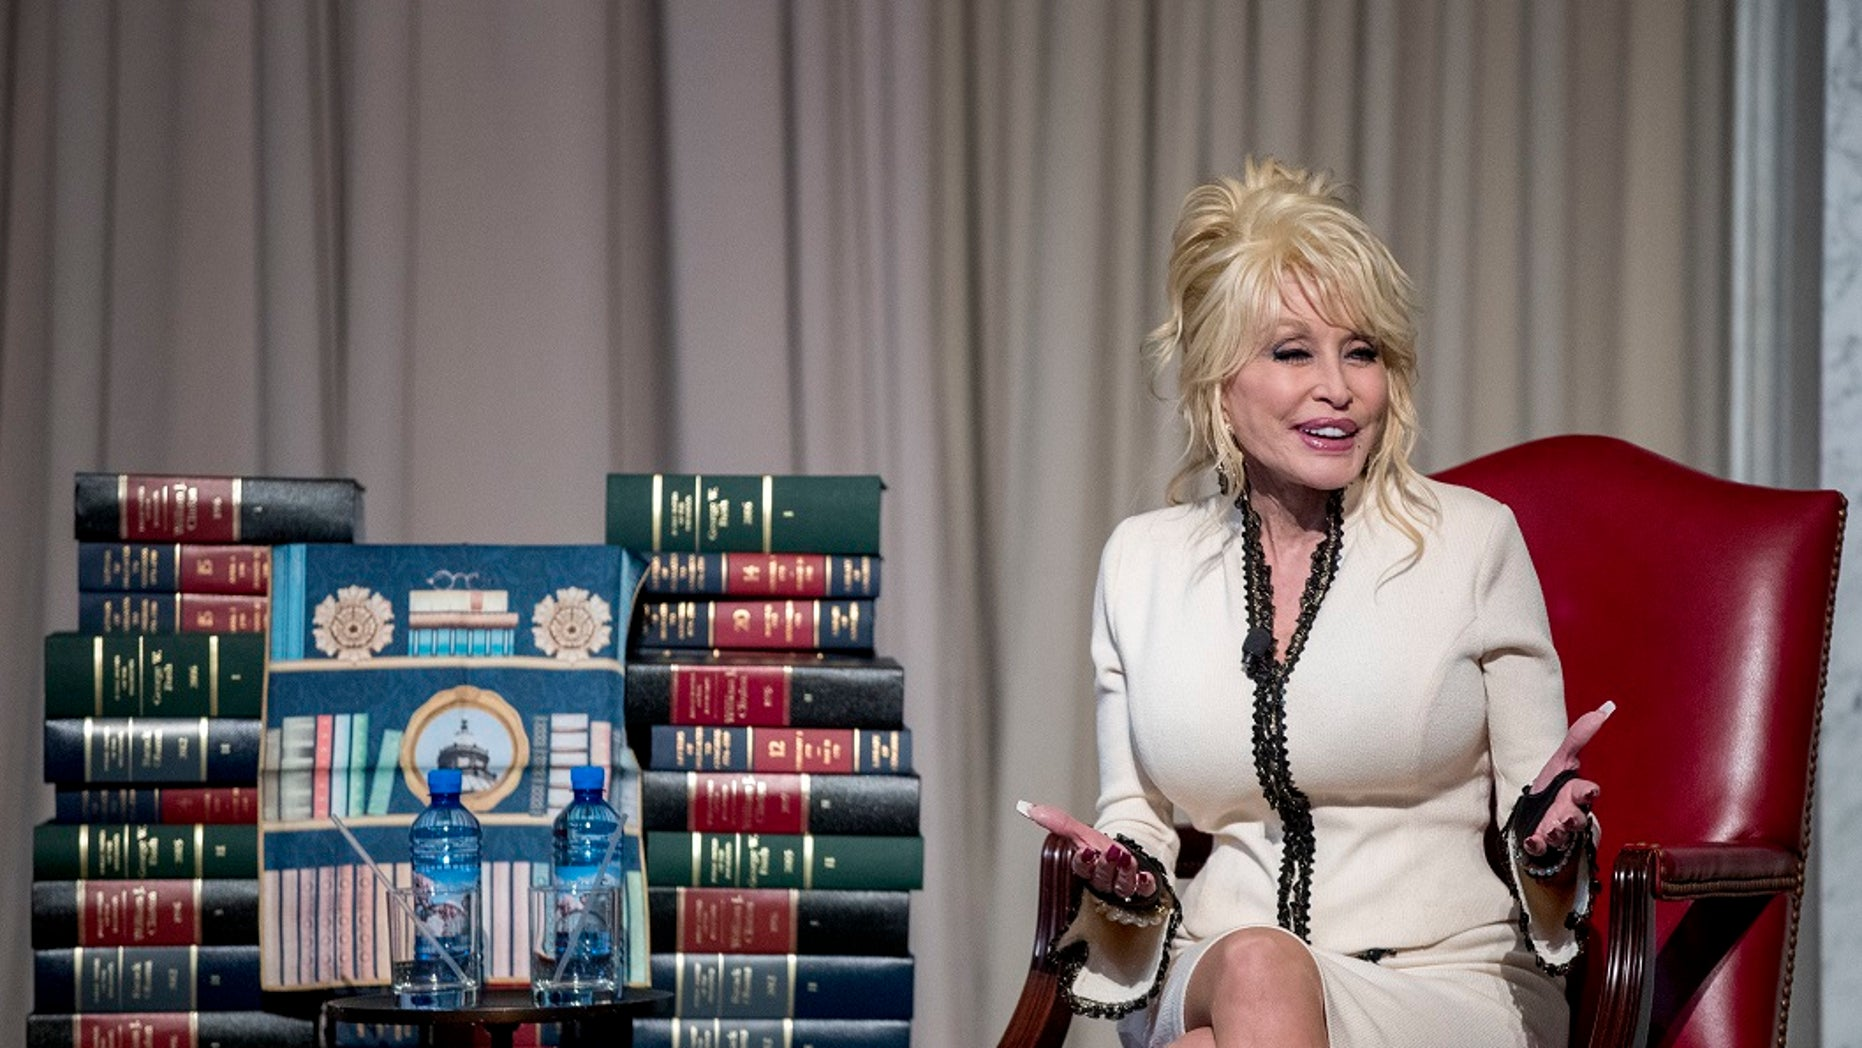 Legendary country singer Dolly Parton donated her 100 millionth book to the Library of Congress Tuesday, Feb. 27, 2018.